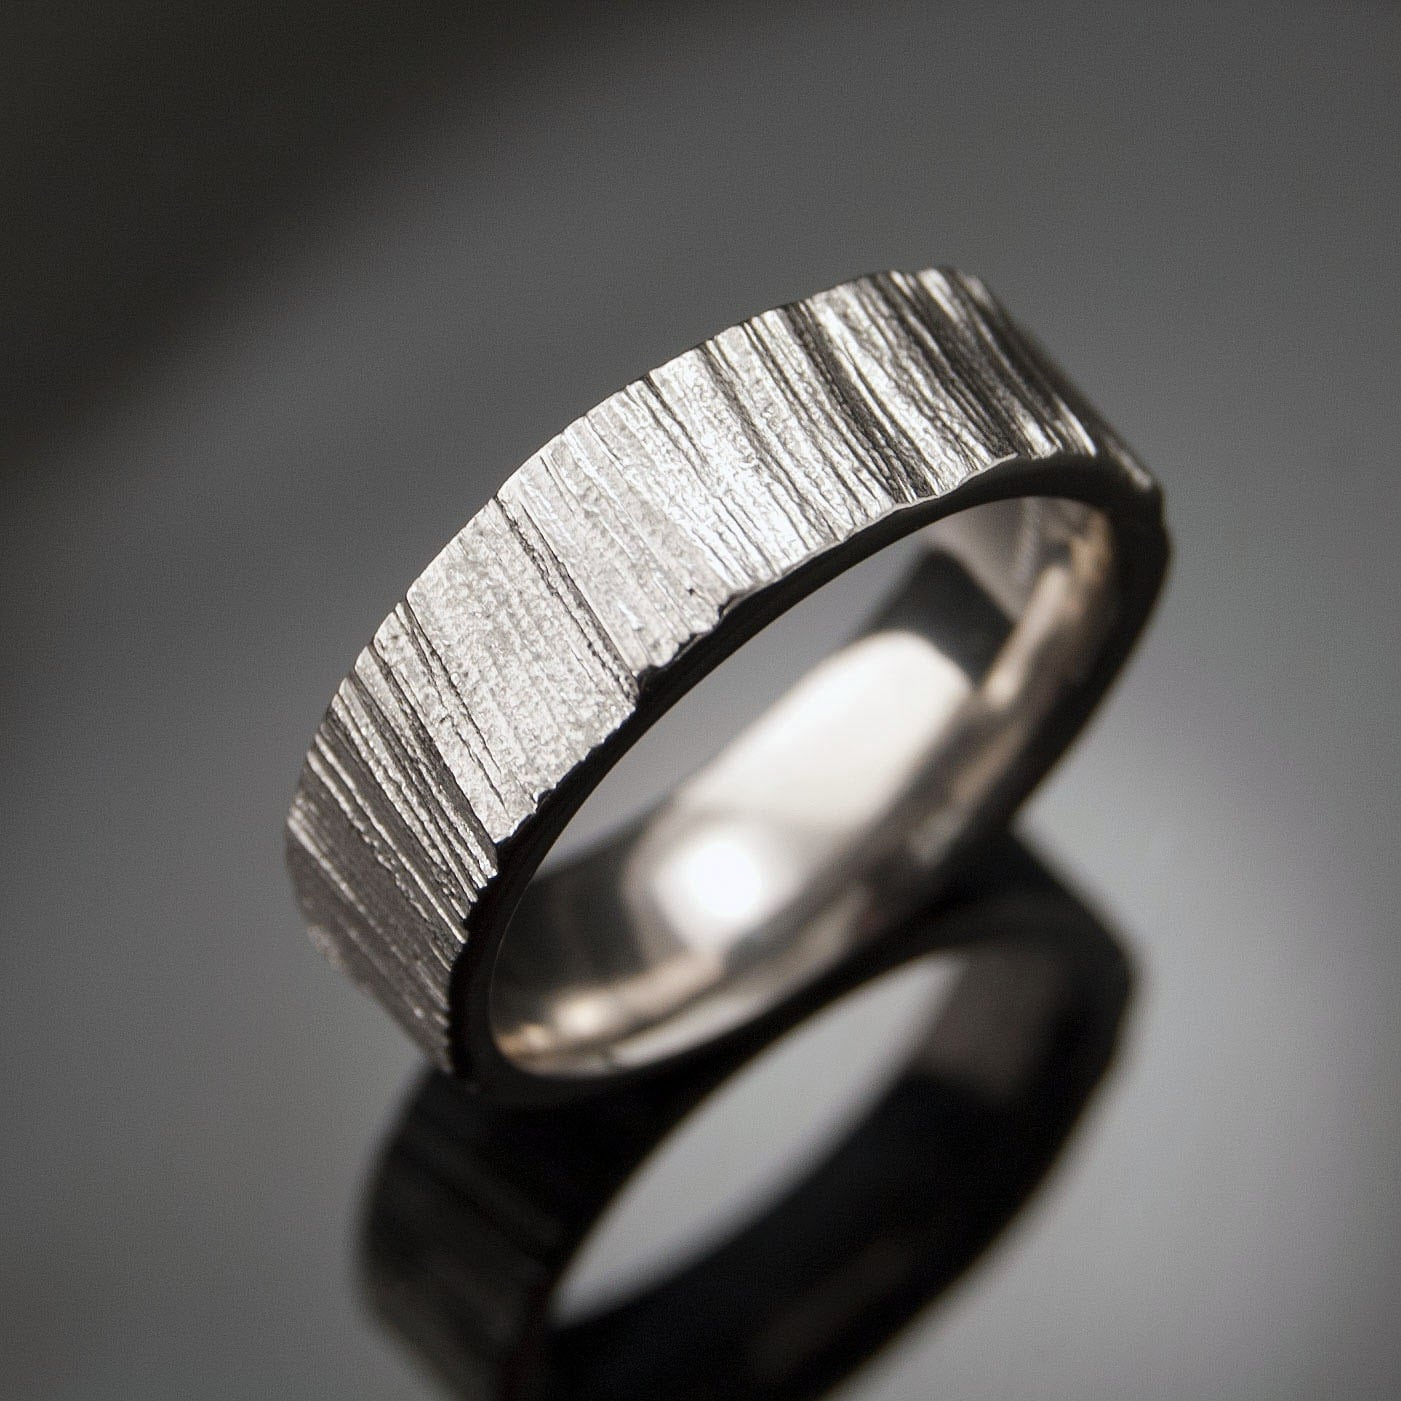 saw cut wedding band ring textured wedding rings for sale zoom